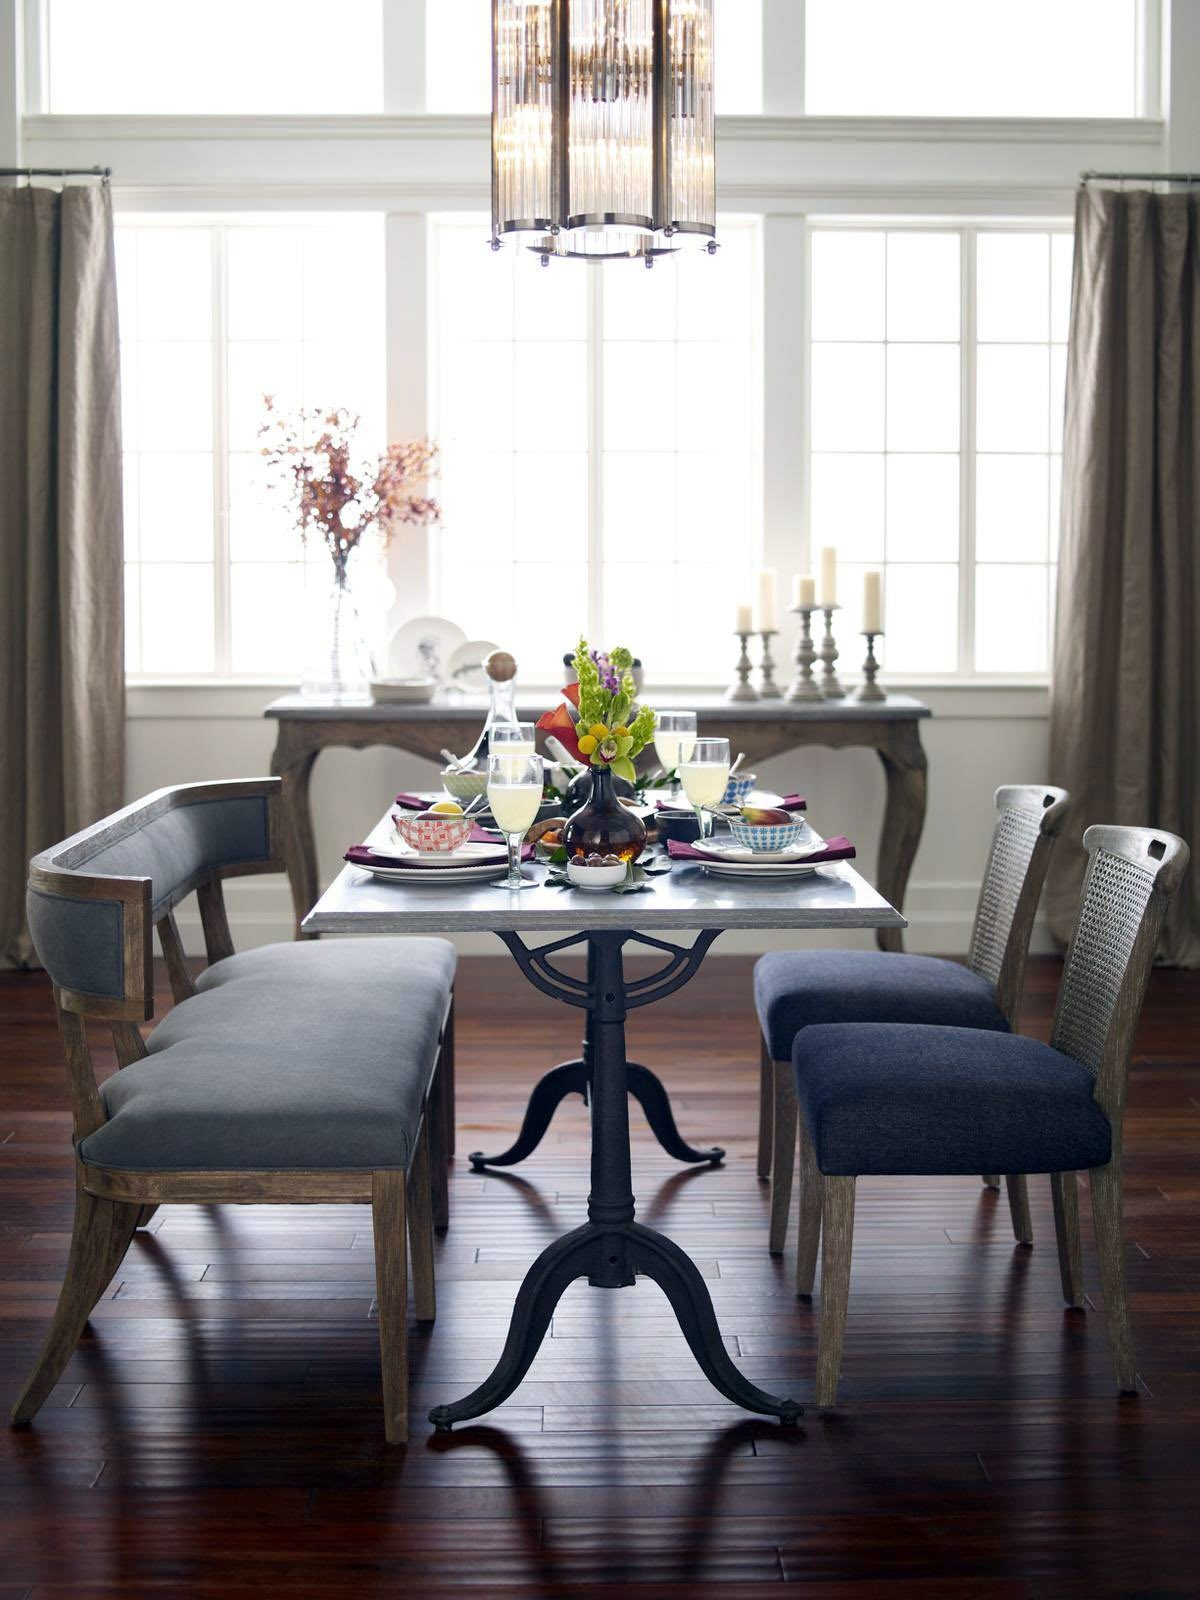 Whether it's a casual luncheon or a holiday dinner, a great meal starts with a great table and chairs.